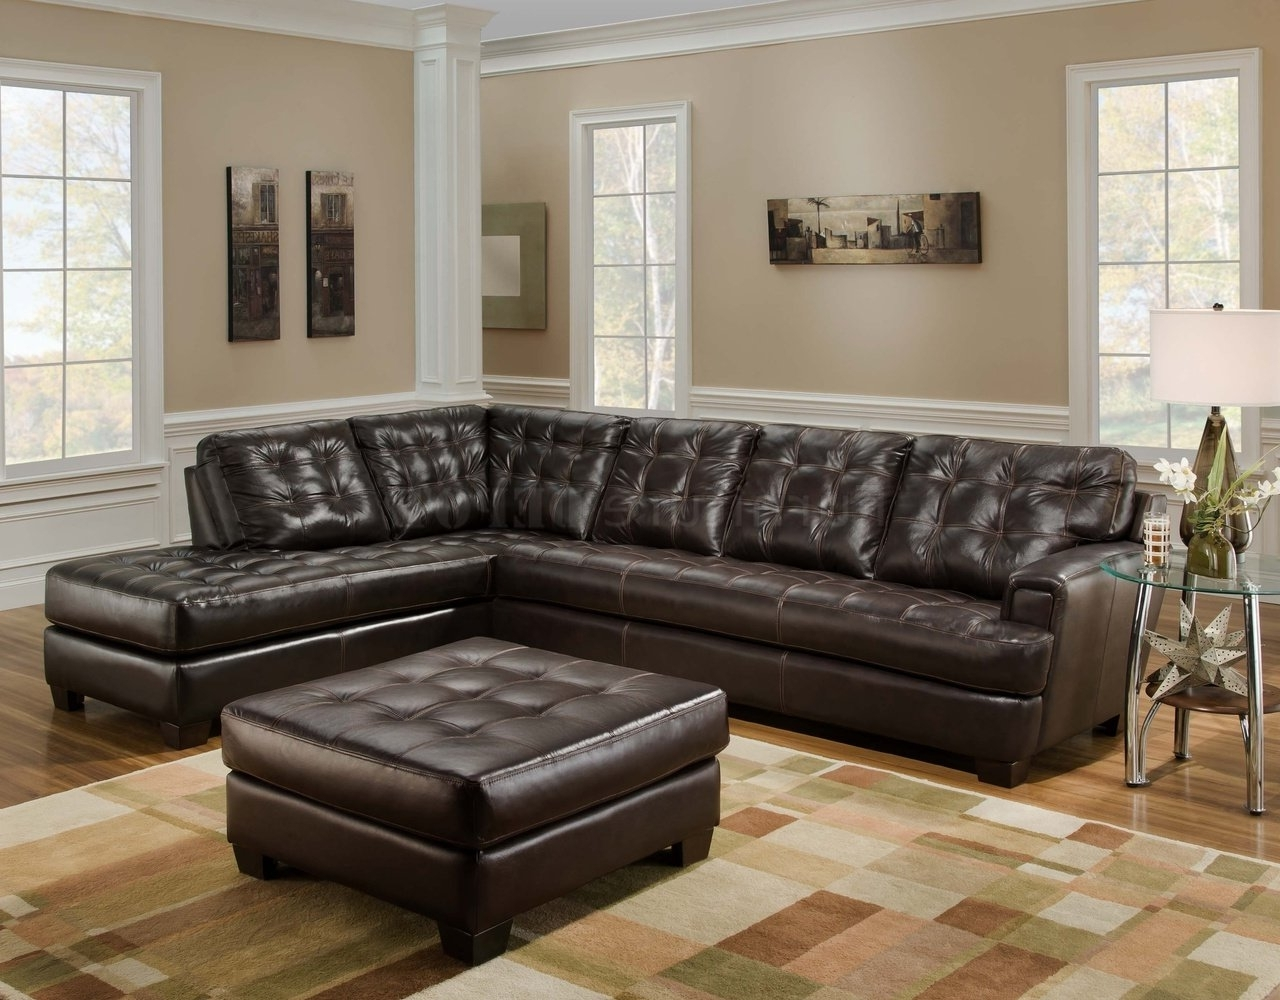 Leather Sectionals With Chaise And Ottoman Within Current Dark Brown Leather Tufted Sectional Chaise Lounge Sofa With (View 8 of 20)